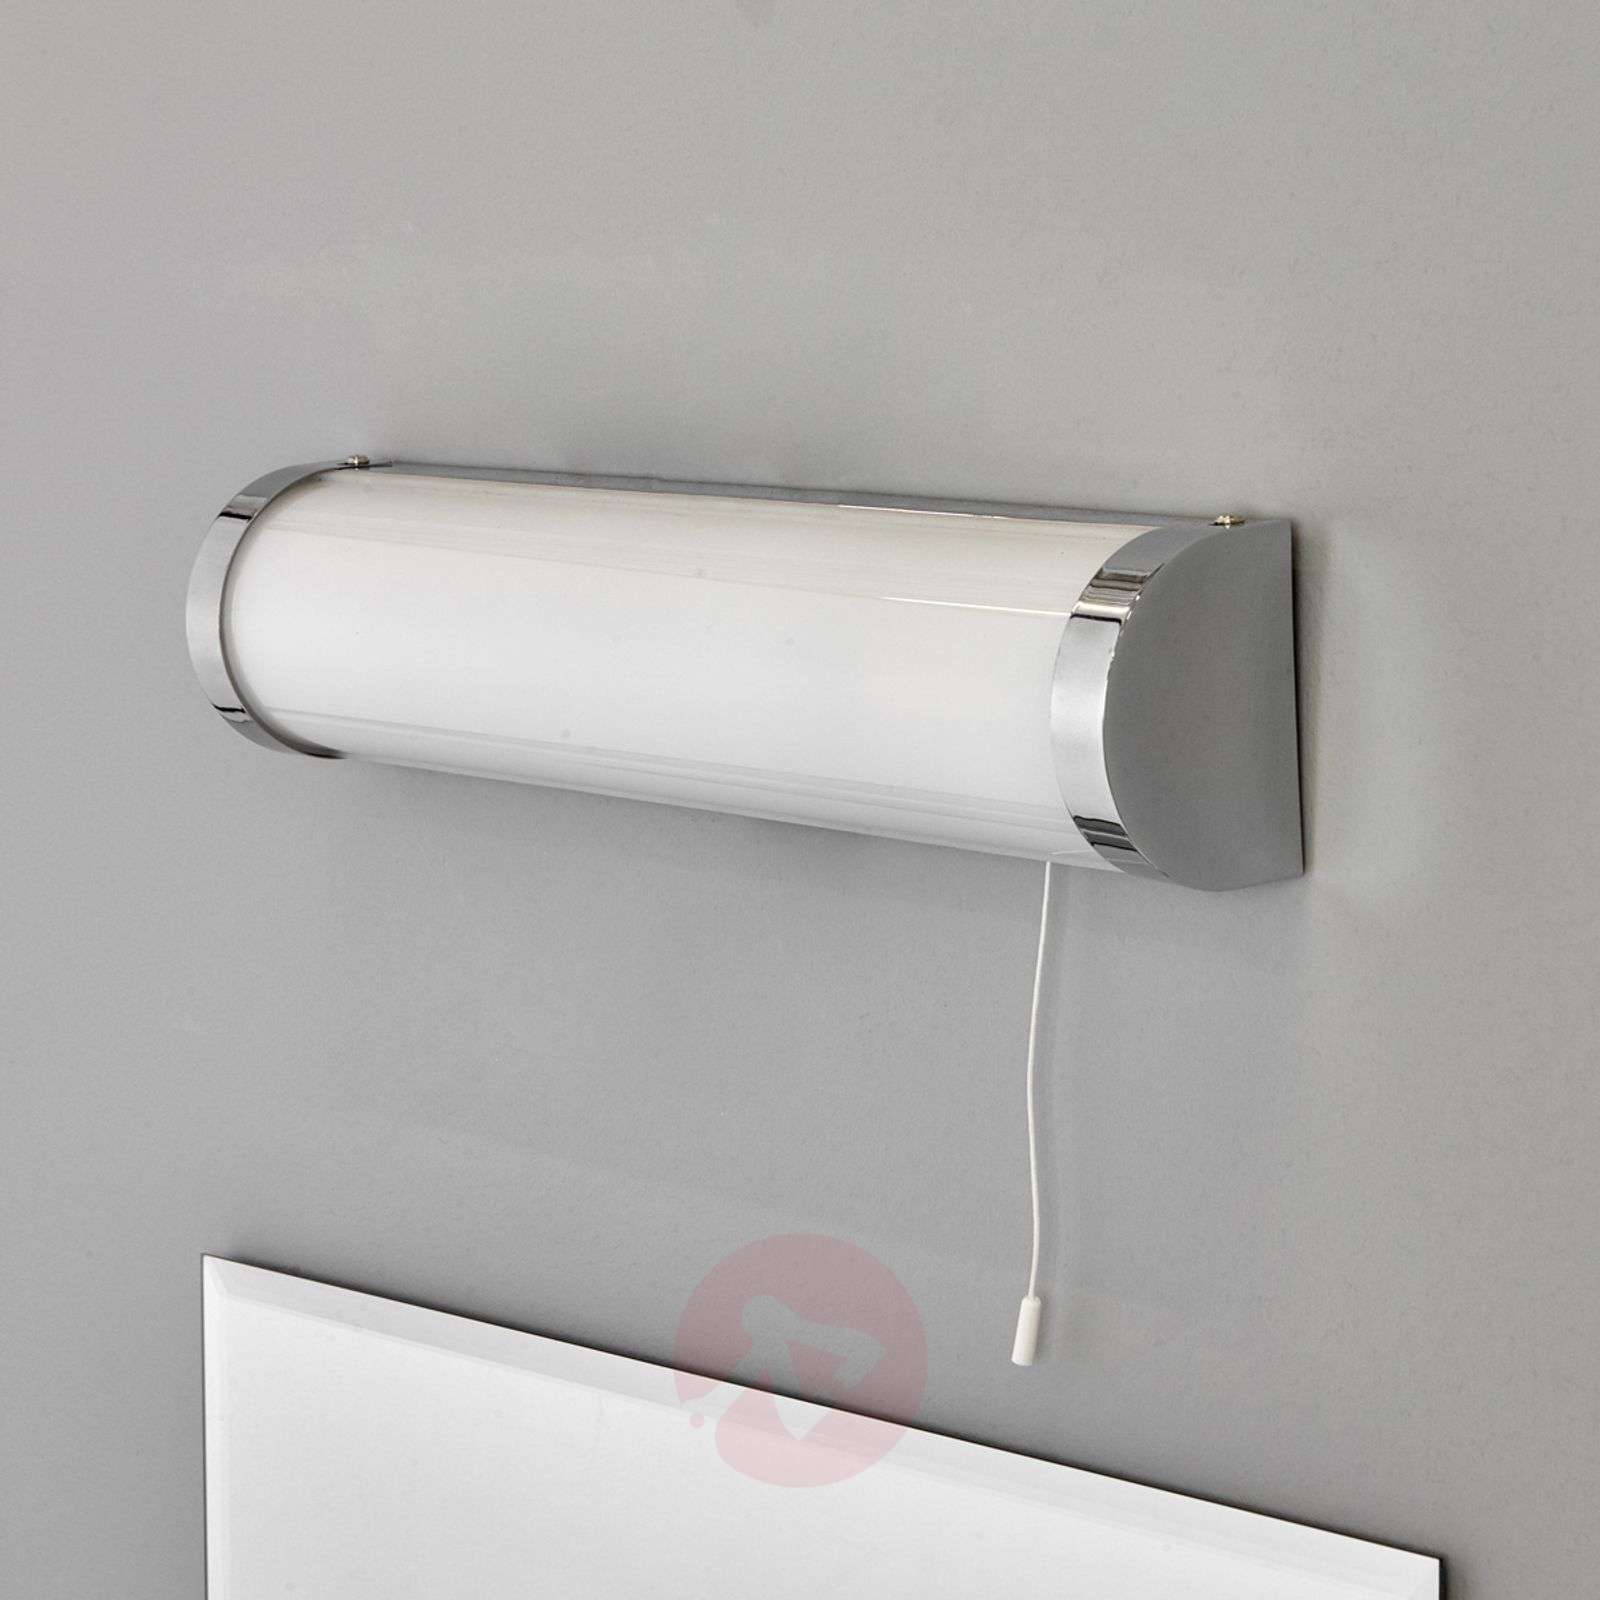 Discreet bathroom light Liana, IP44-8570225-01